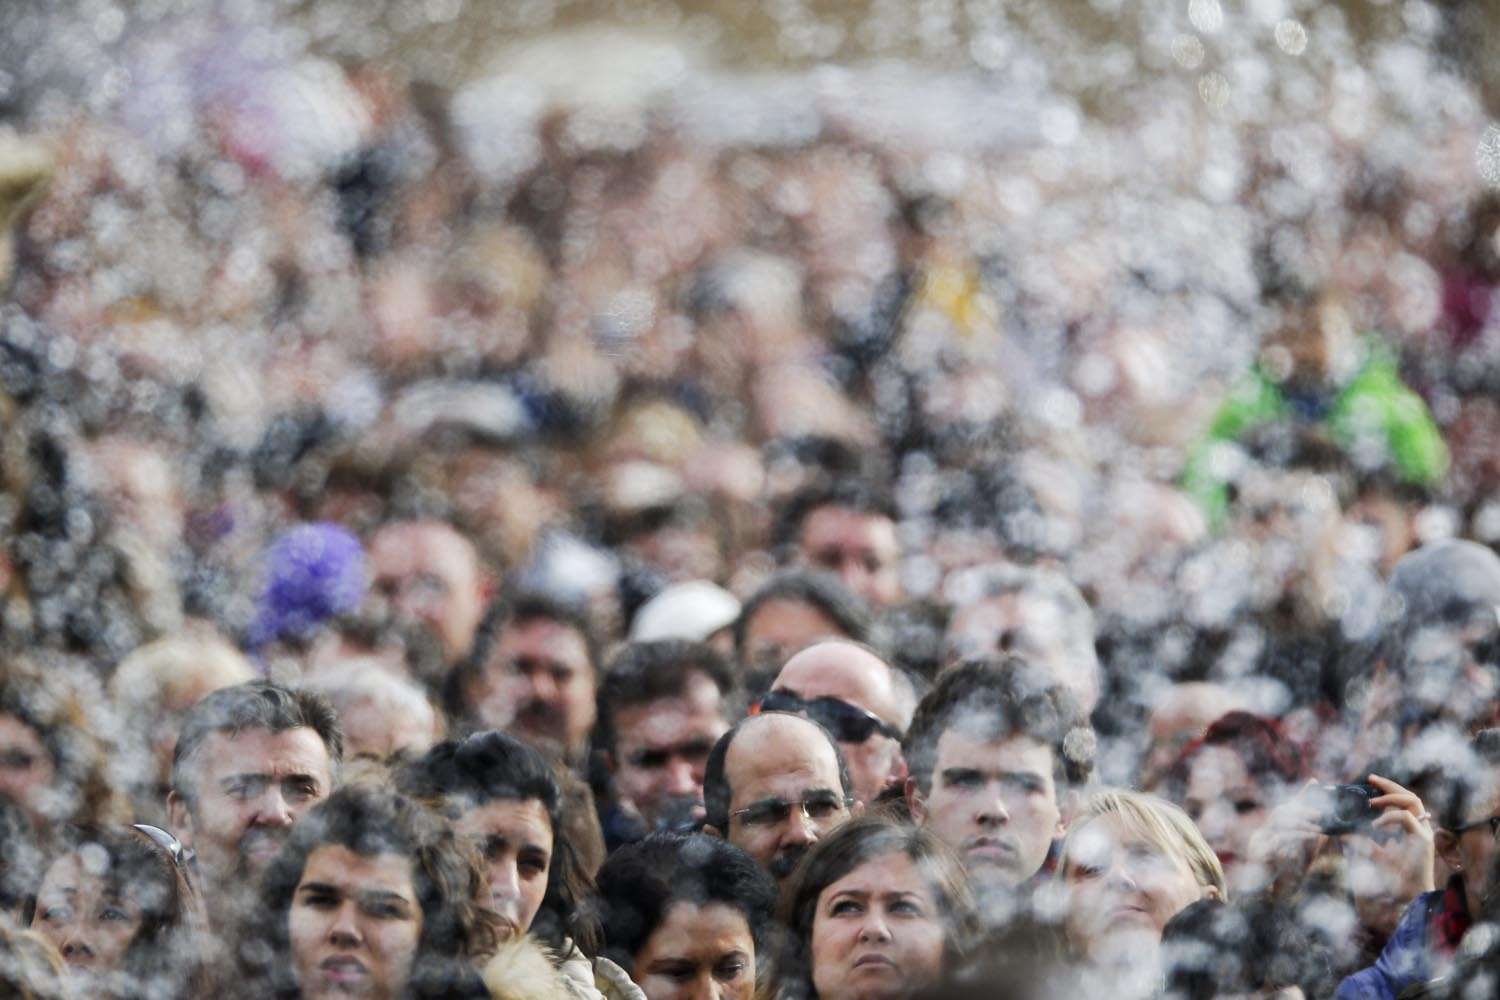 Dec. 29, 2013. Faithful are pictured through the water of a fountain as Pope Francis leads the Angelus prayer from the window of the Apostolic palace in Saint Peter's Square at the Vatican, Italy.